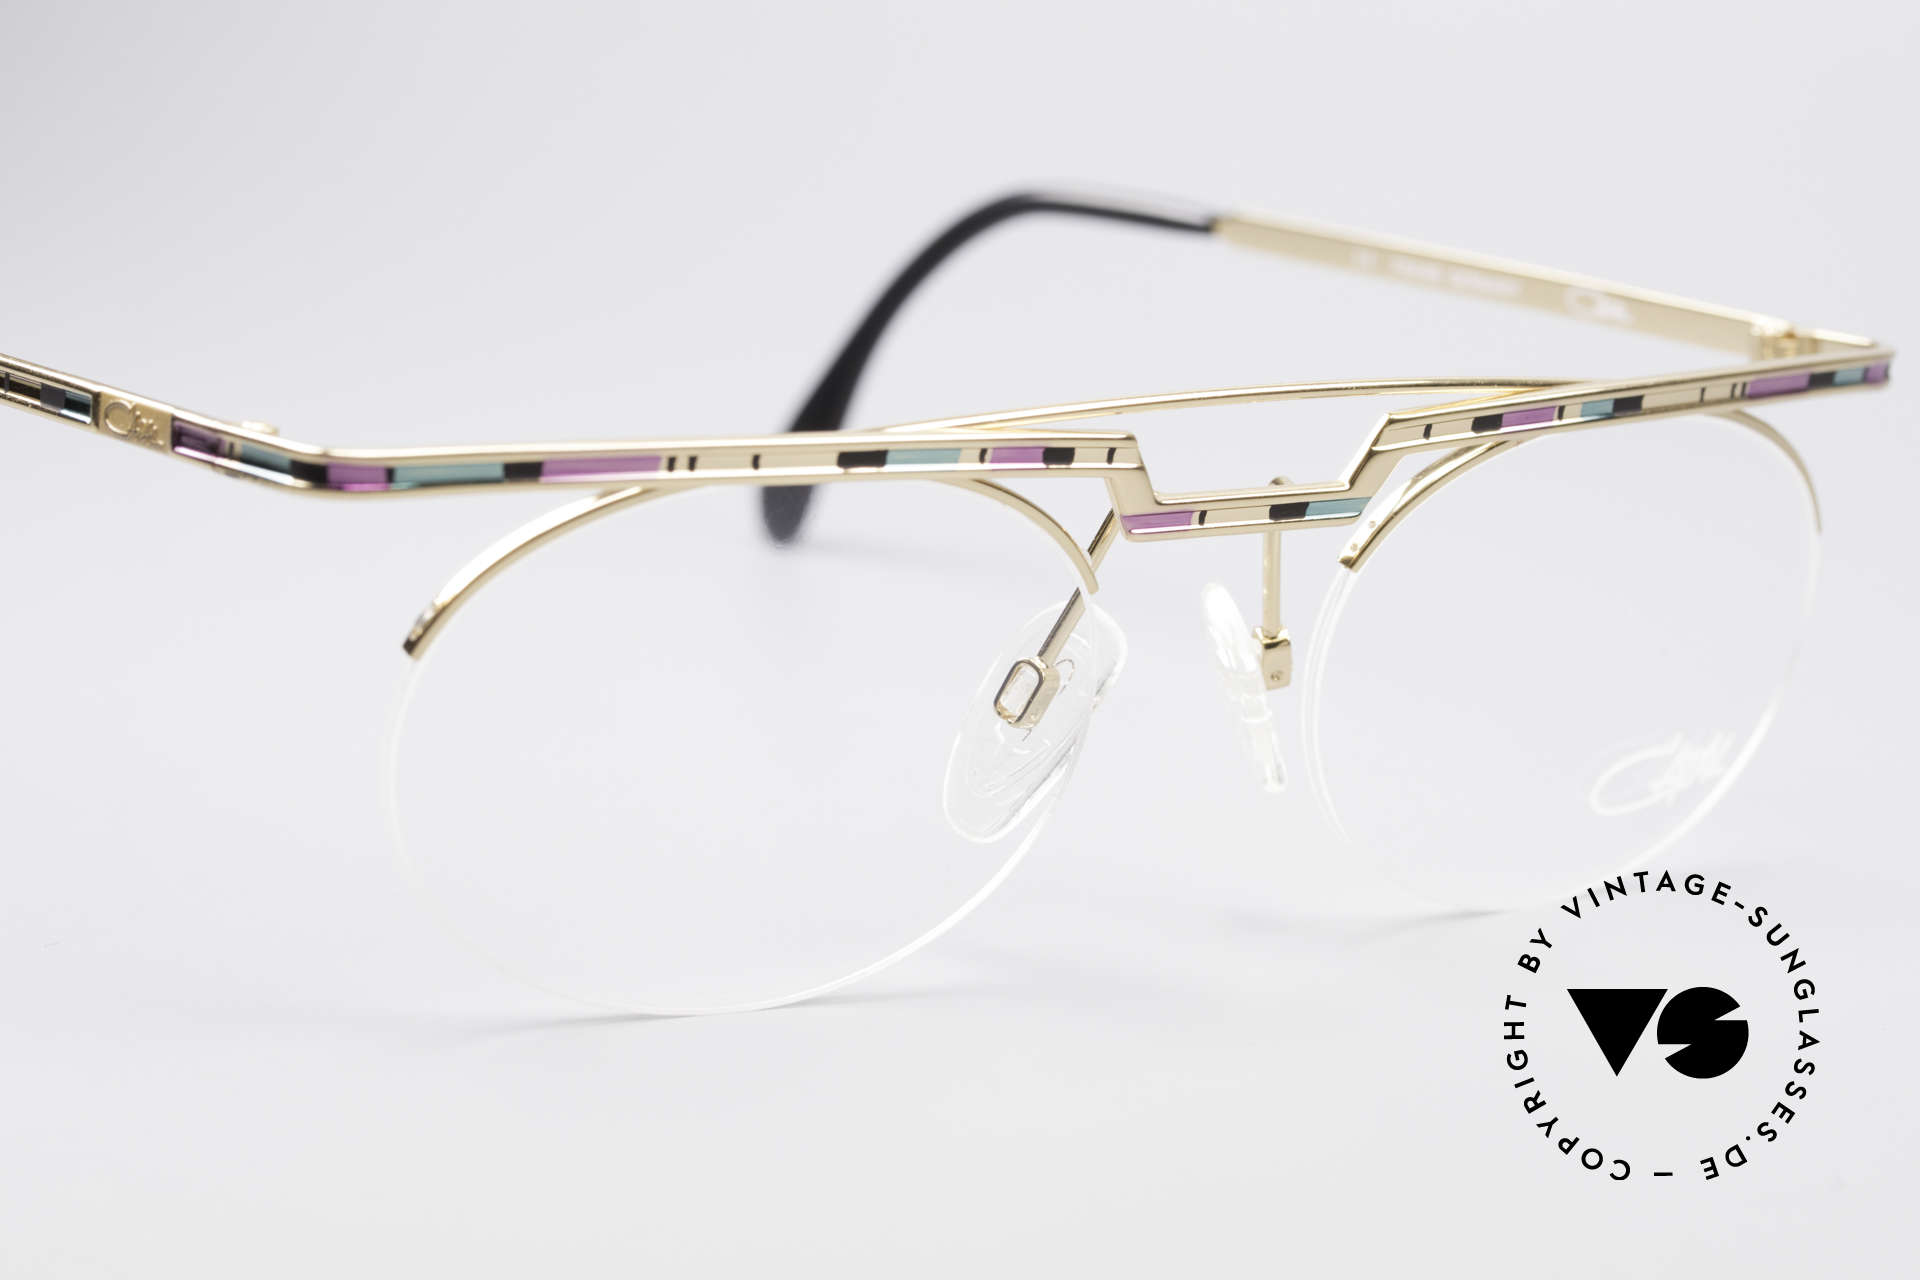 Cazal 758 Original Glasses No Retro Frame, tangible high-end craftsmanship (frame made in Germany), Made for Men and Women